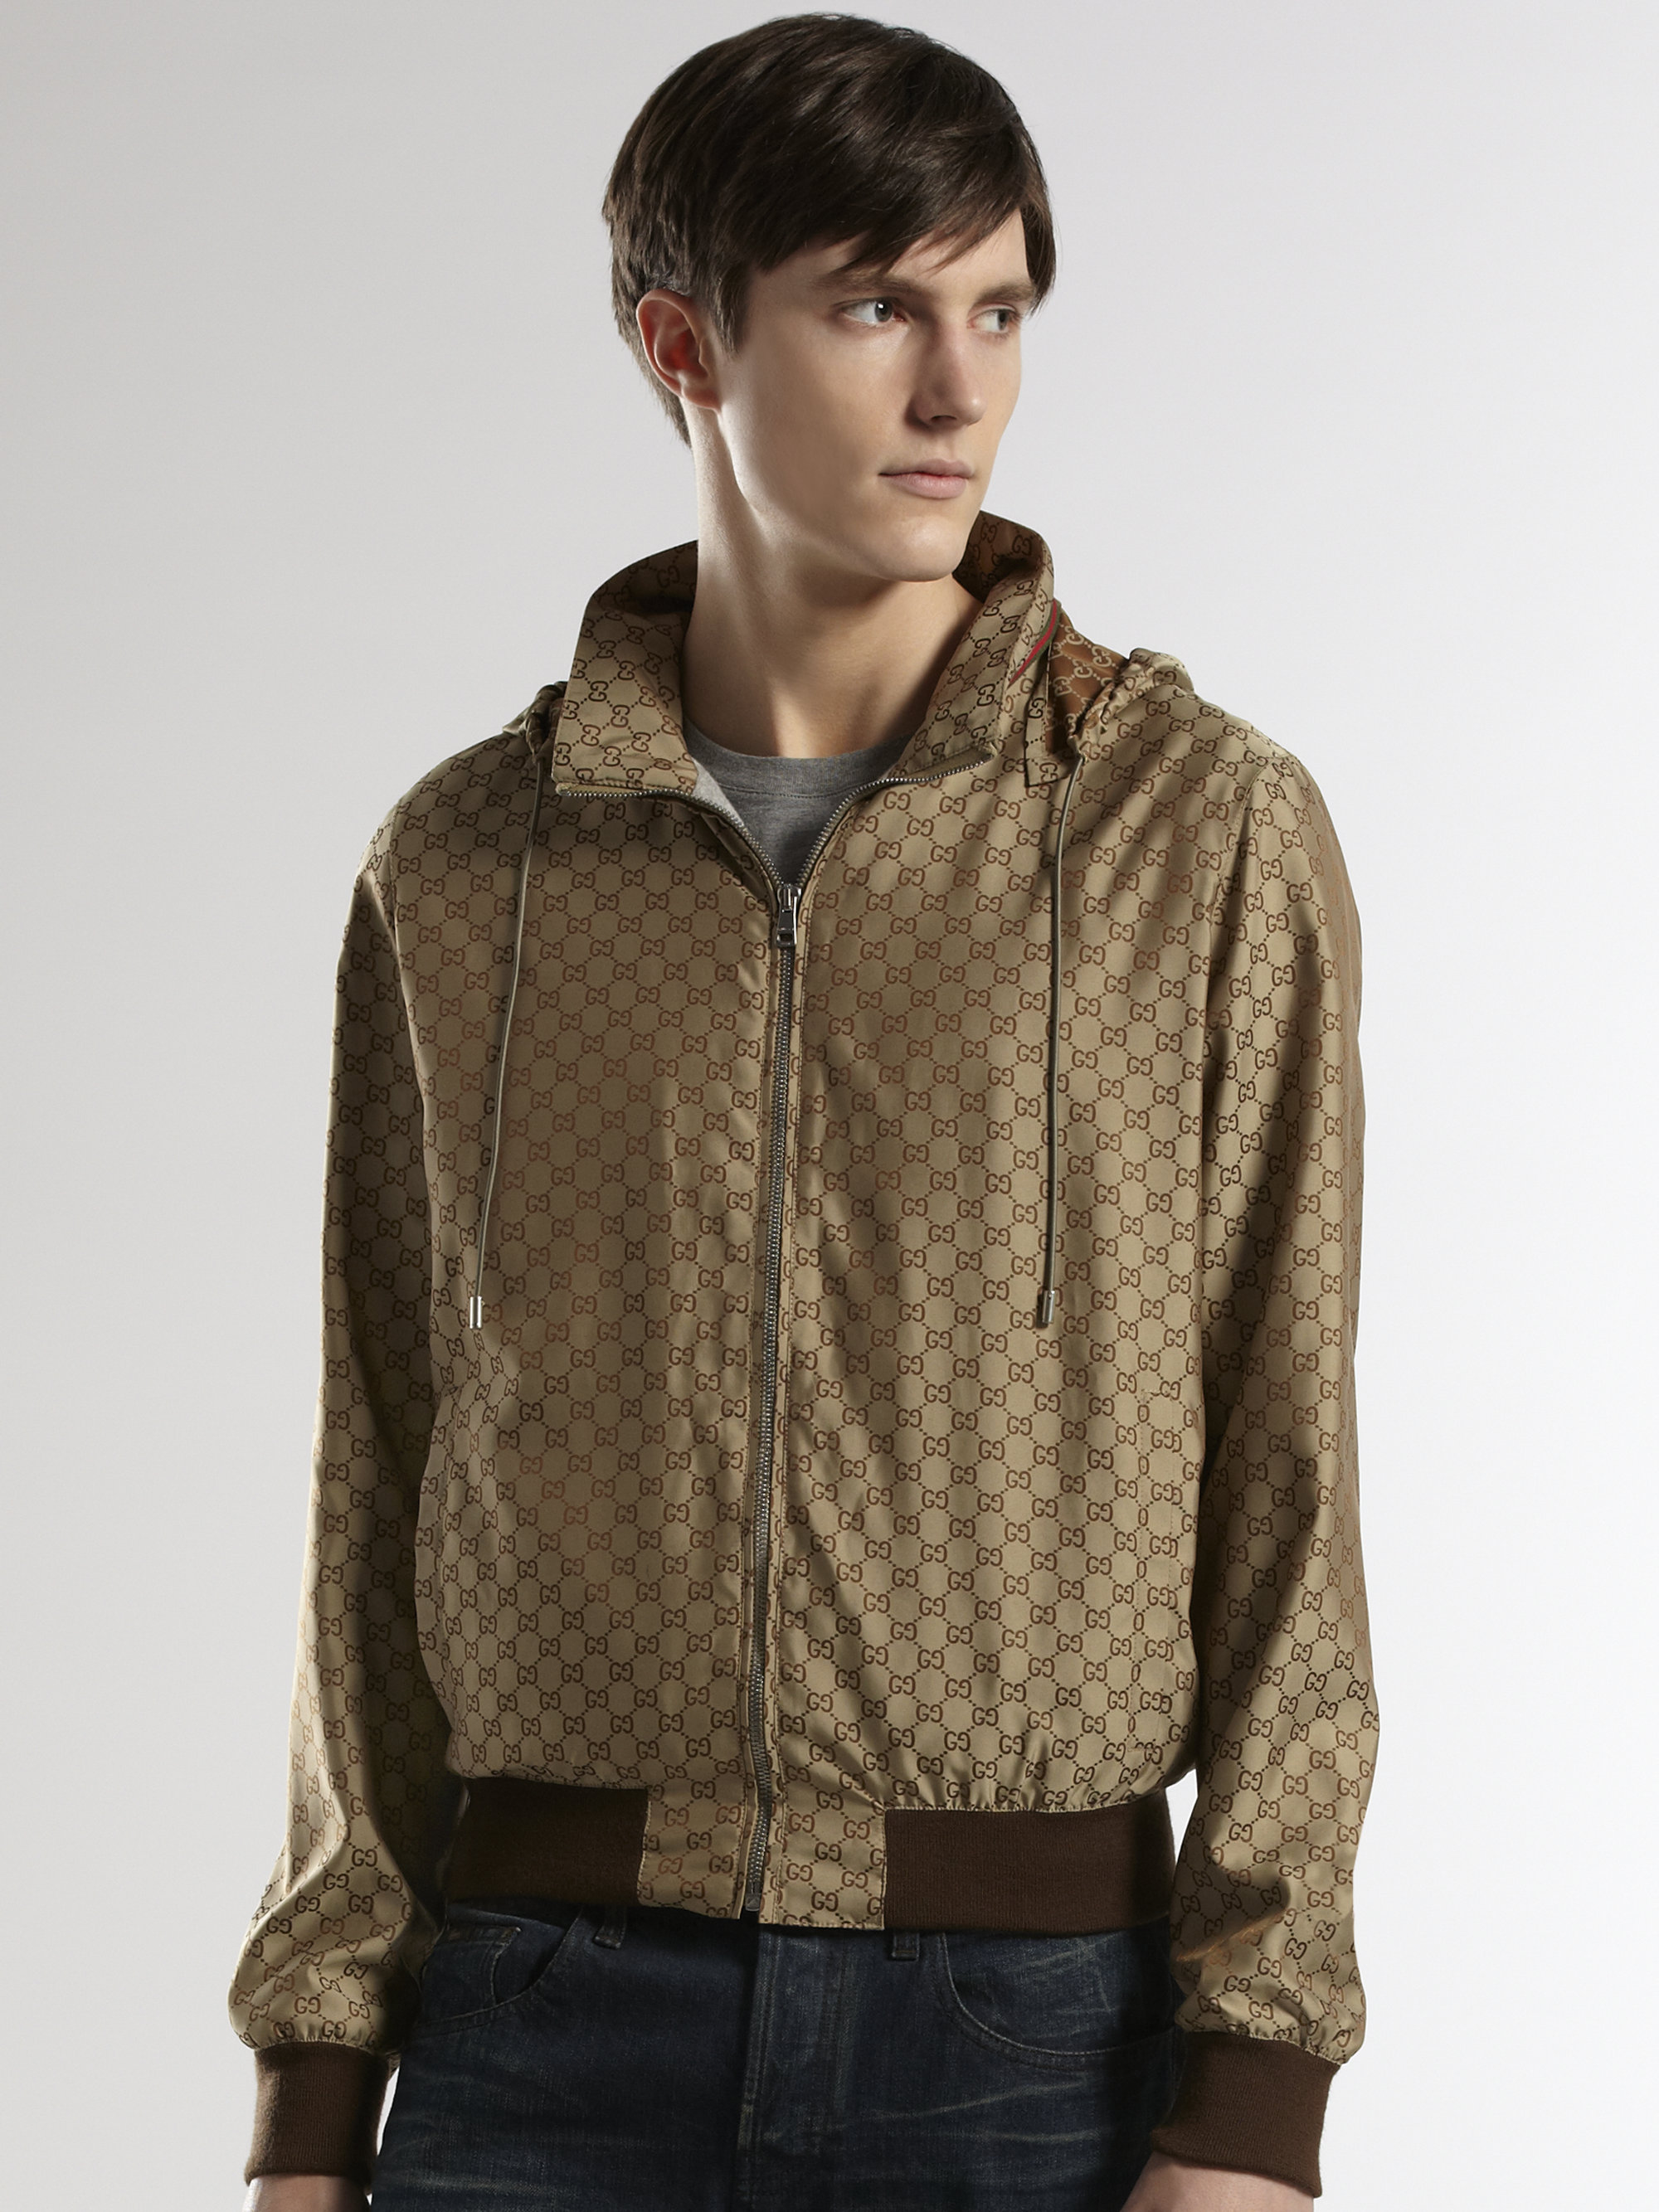 d508a8a90584 Gucci Jacket Mens Brown - Cairoamani.com